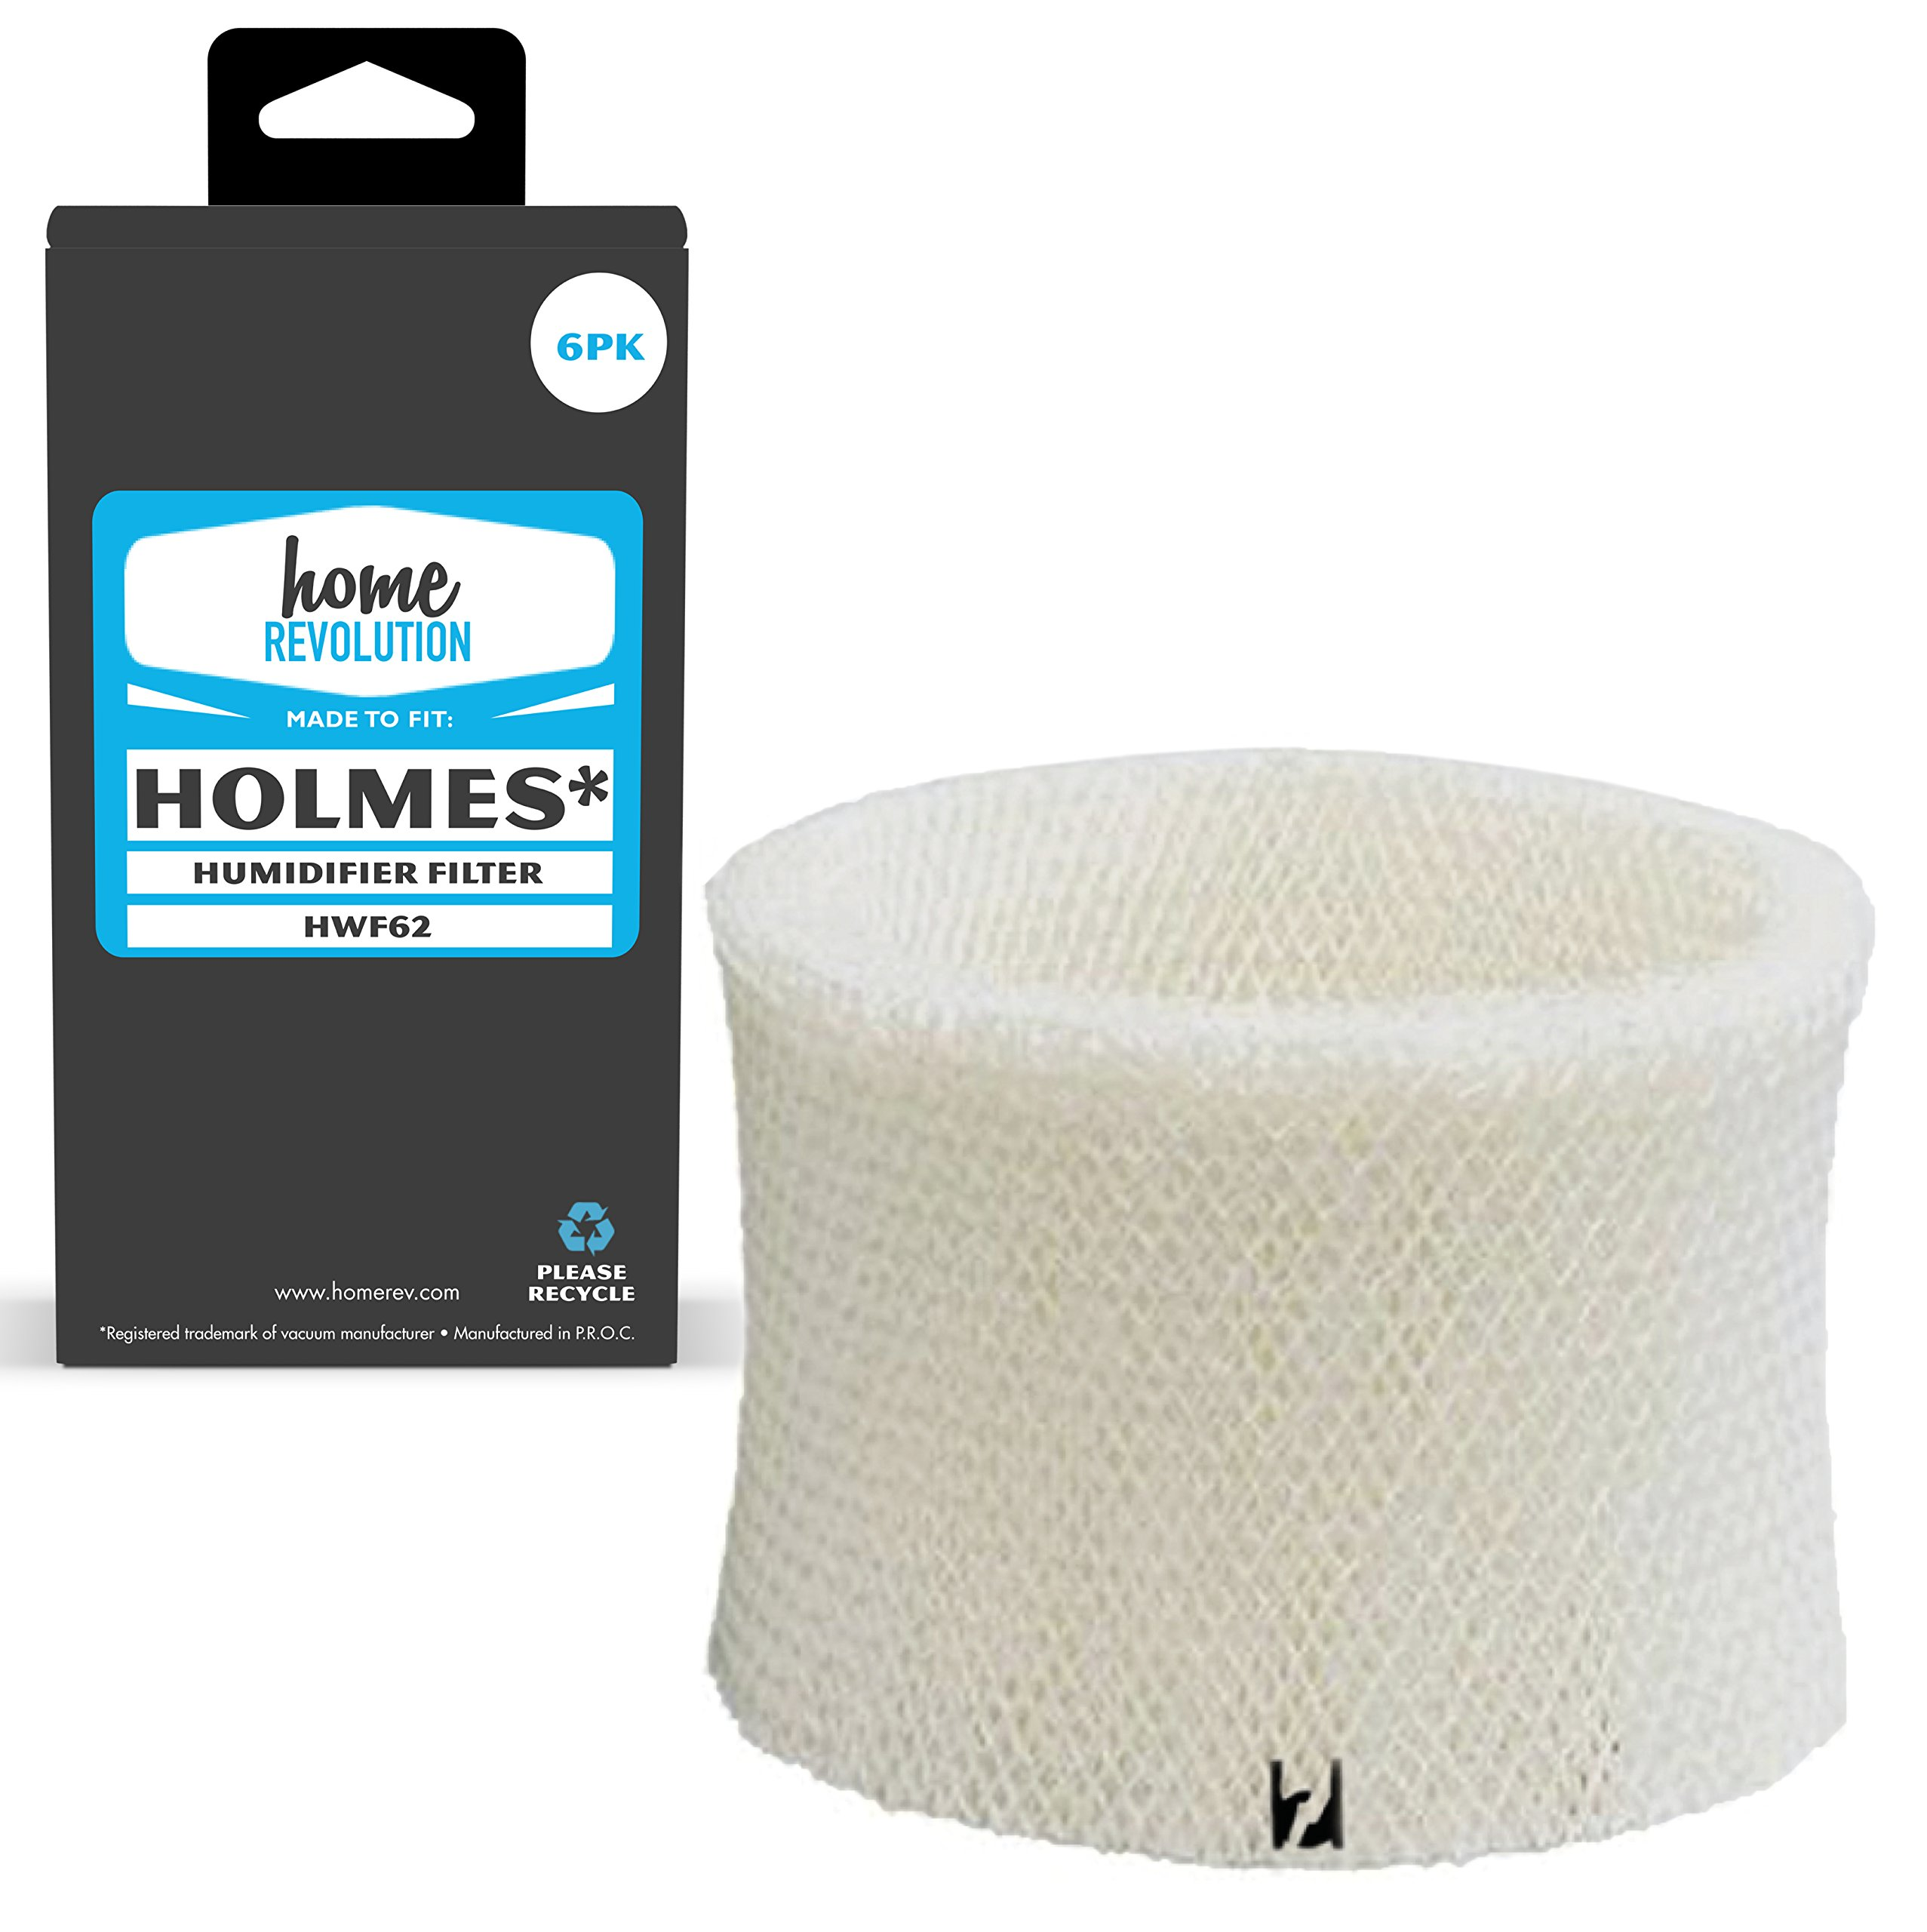 Home Revolution 6 Replacement Humidifier Filters, Fits Part HWF62 Filter A & Holmes, Honeywell, Sunbeam and Vicks Humidifiers